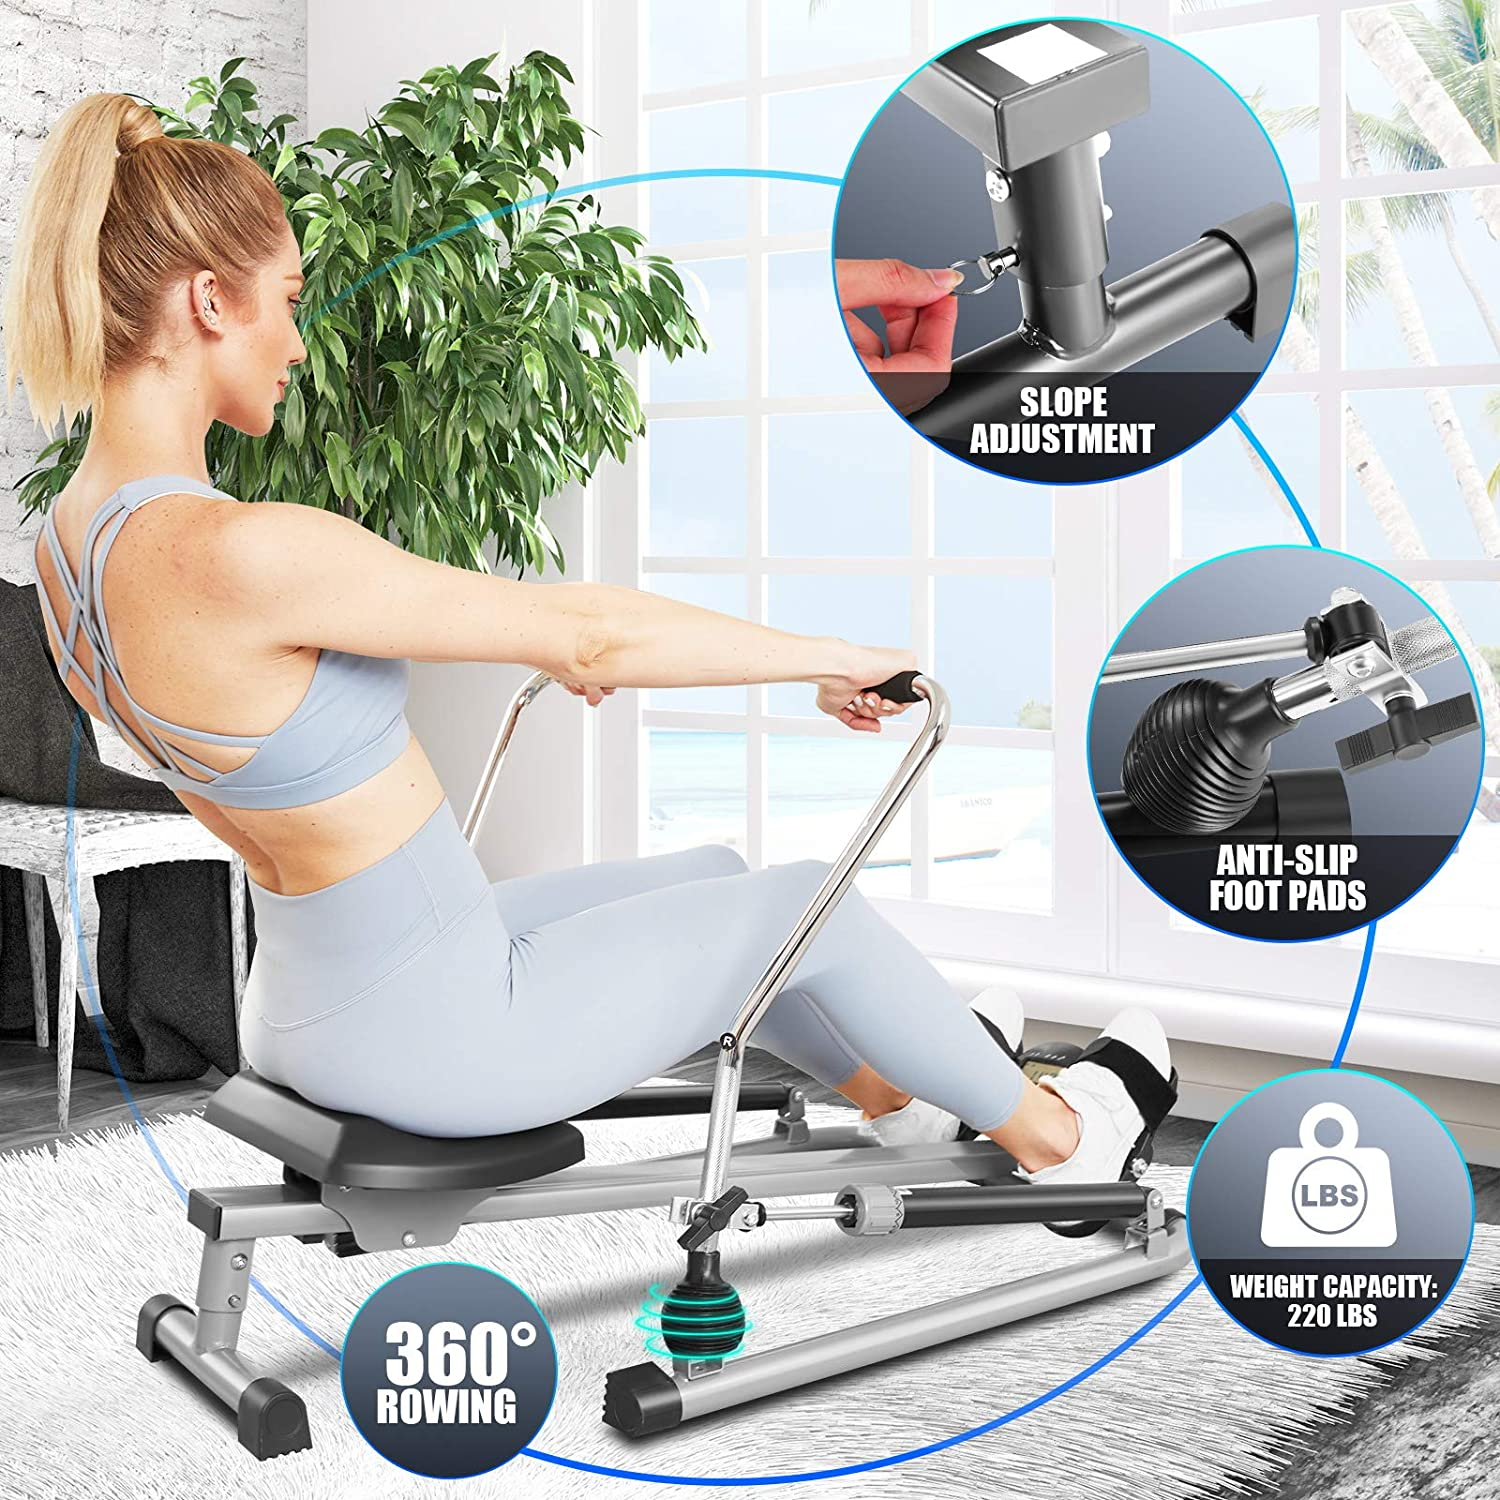 Home//Apartment Full Motion Adjustable Rower with 12 Level Resistance /& Soft Seat /& LCD Monitor /& 45 Inch Long Rail for Indoor Cardio Exercise Silver ANCHEER Hydraulic Rowing Machine